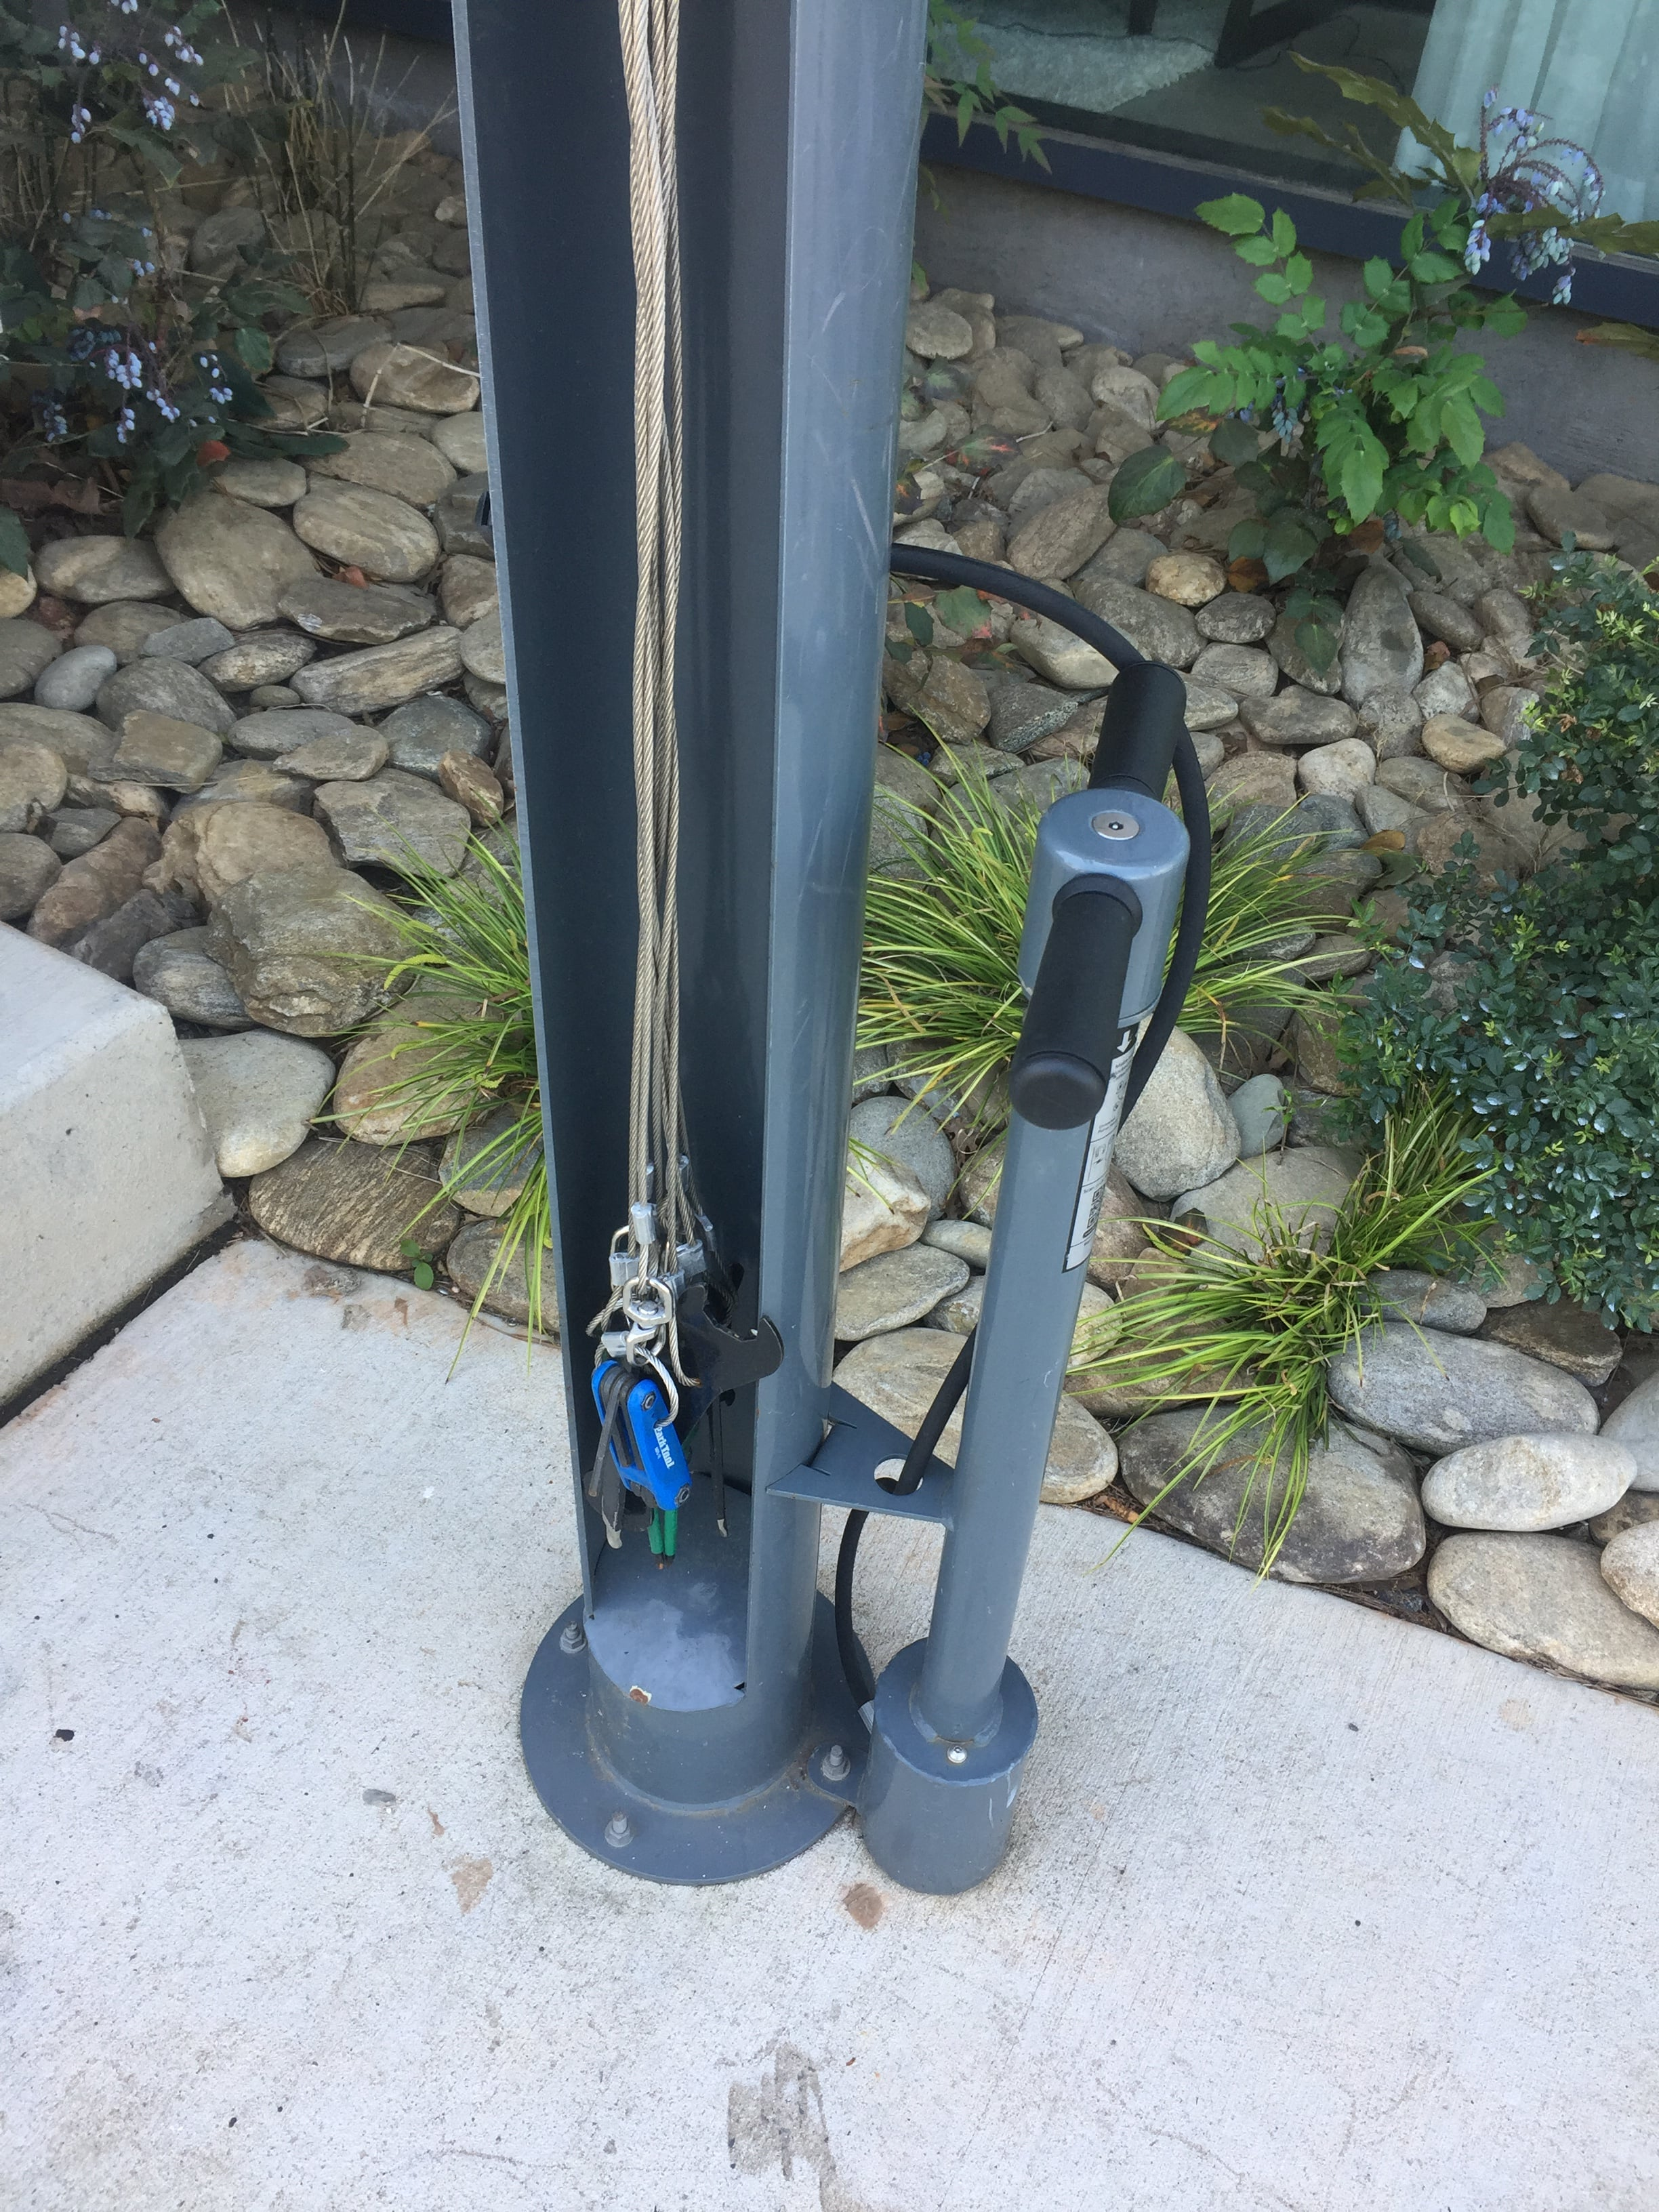 Bike sharing repair station in Charlotte. No need for your own equipment. Community!